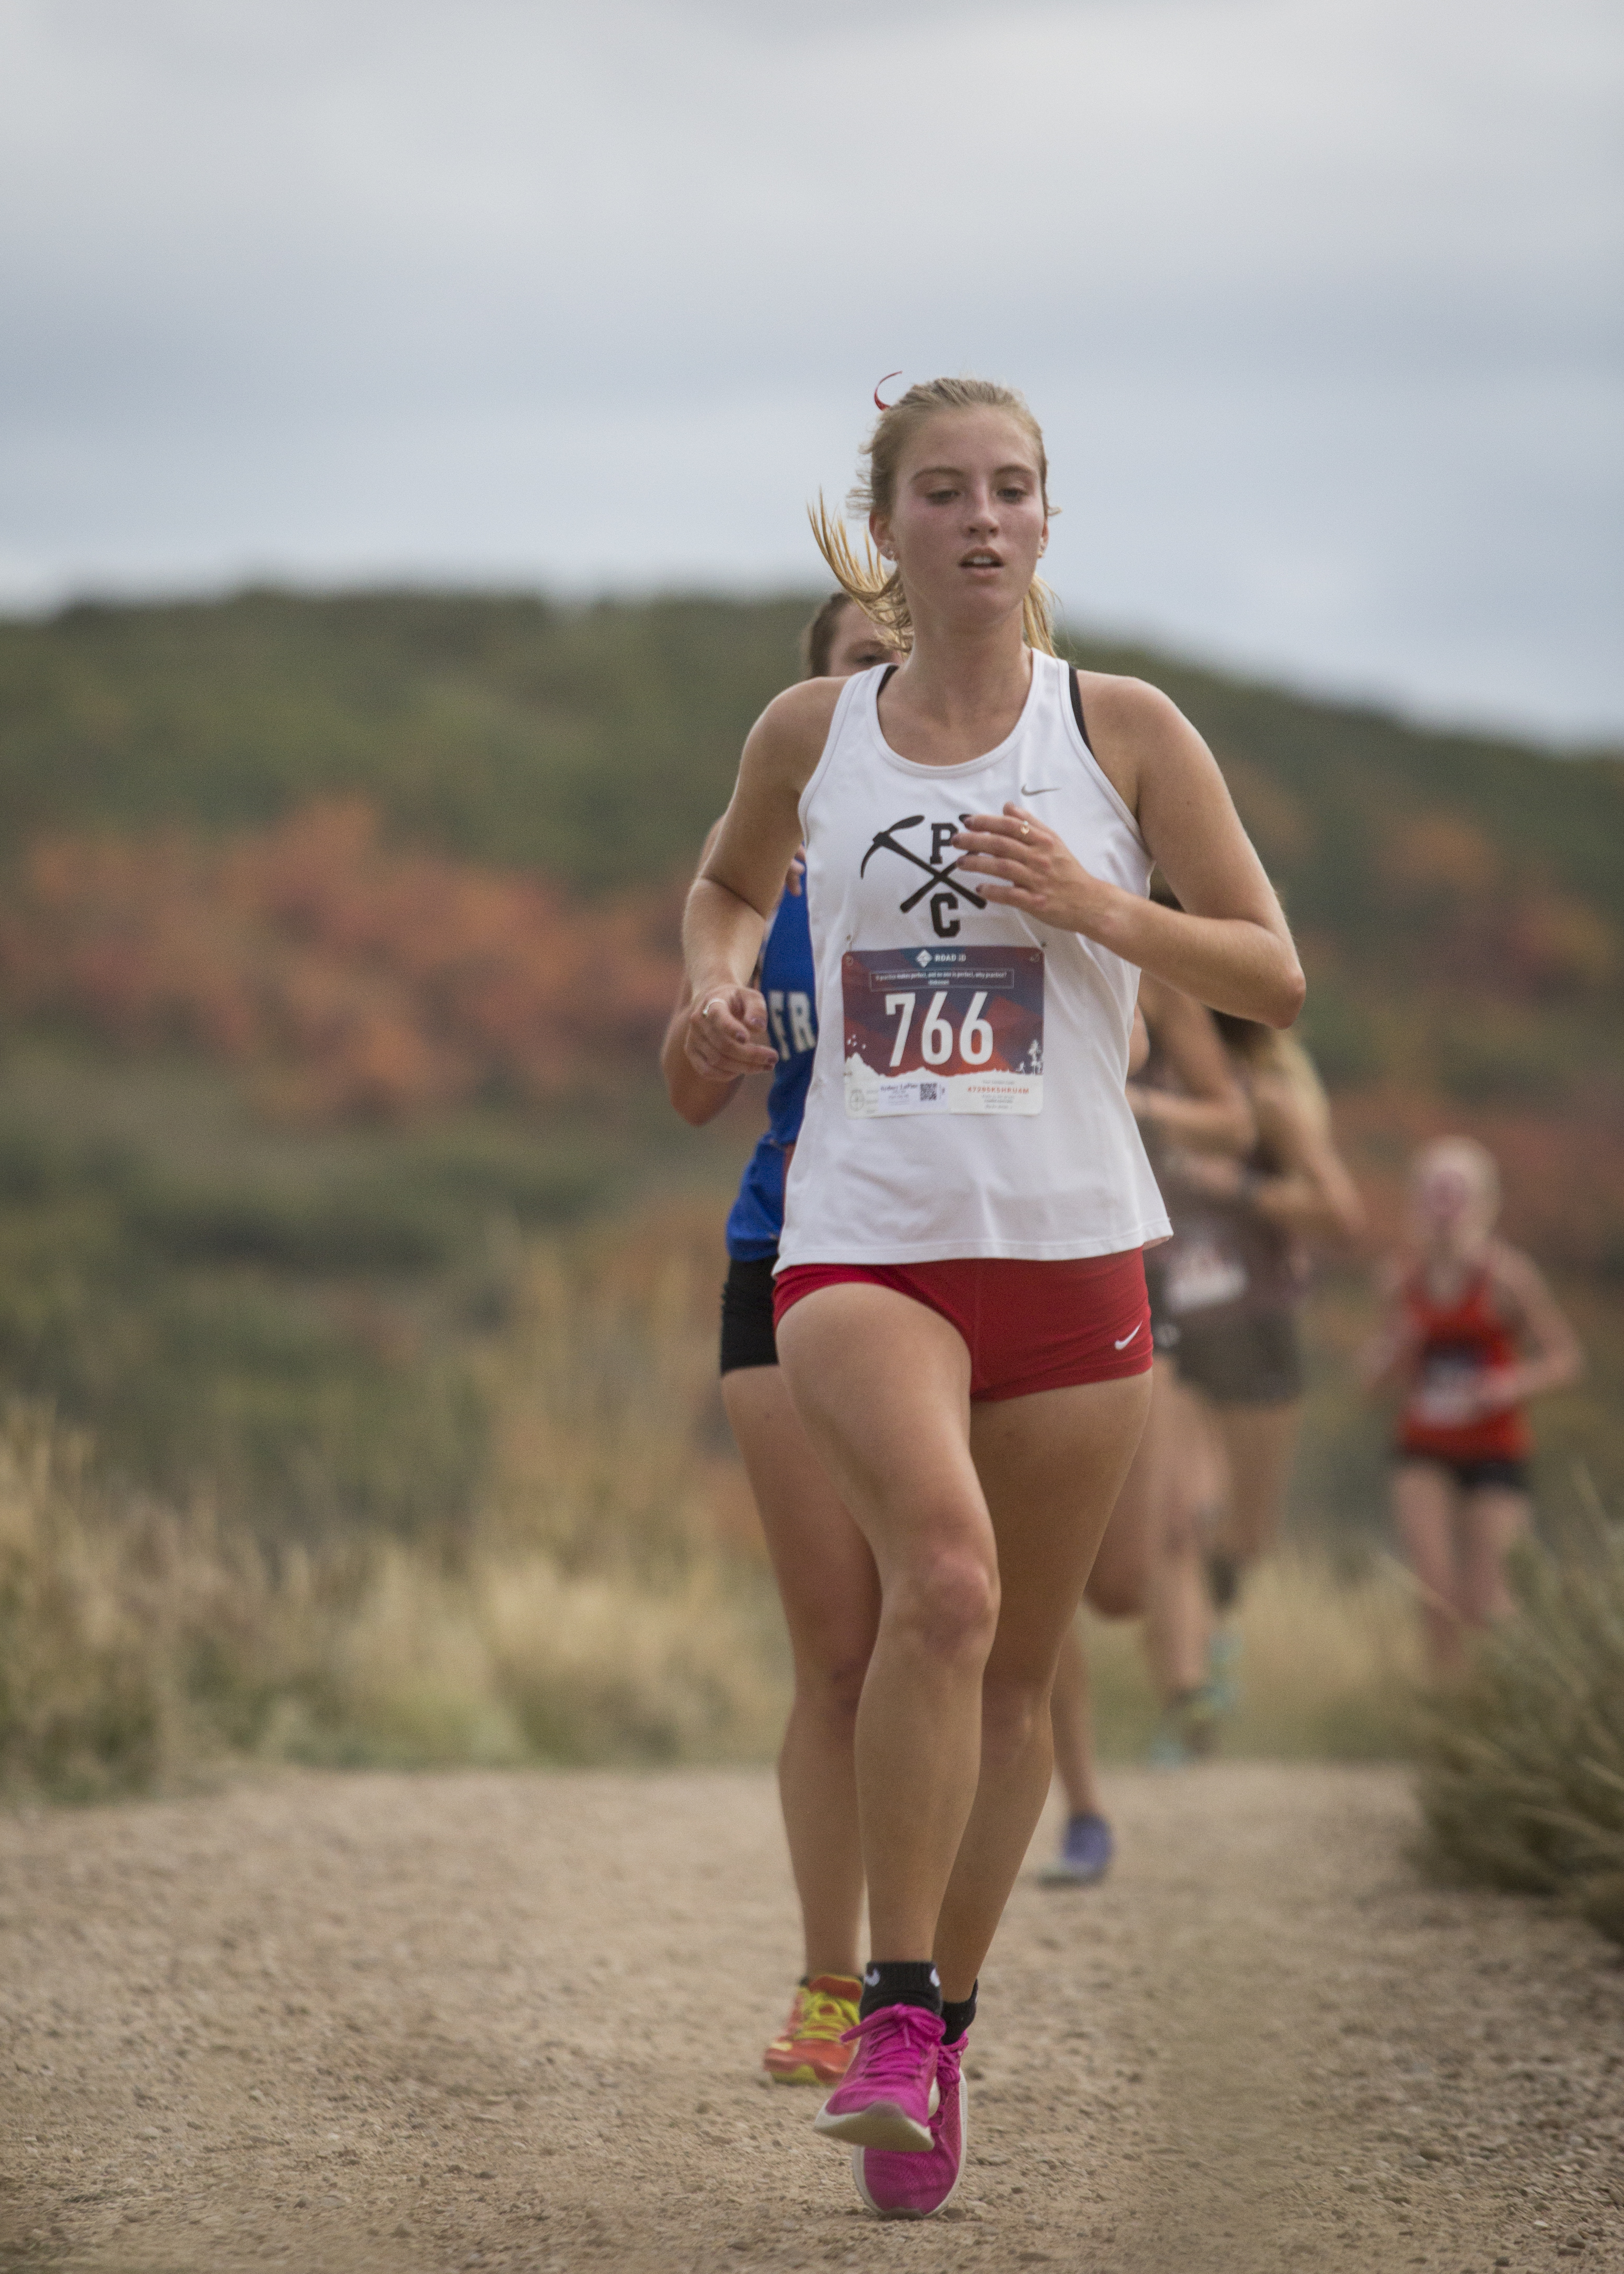 Park City senior Sydney LaPine ready to finish strong on the cross-country course